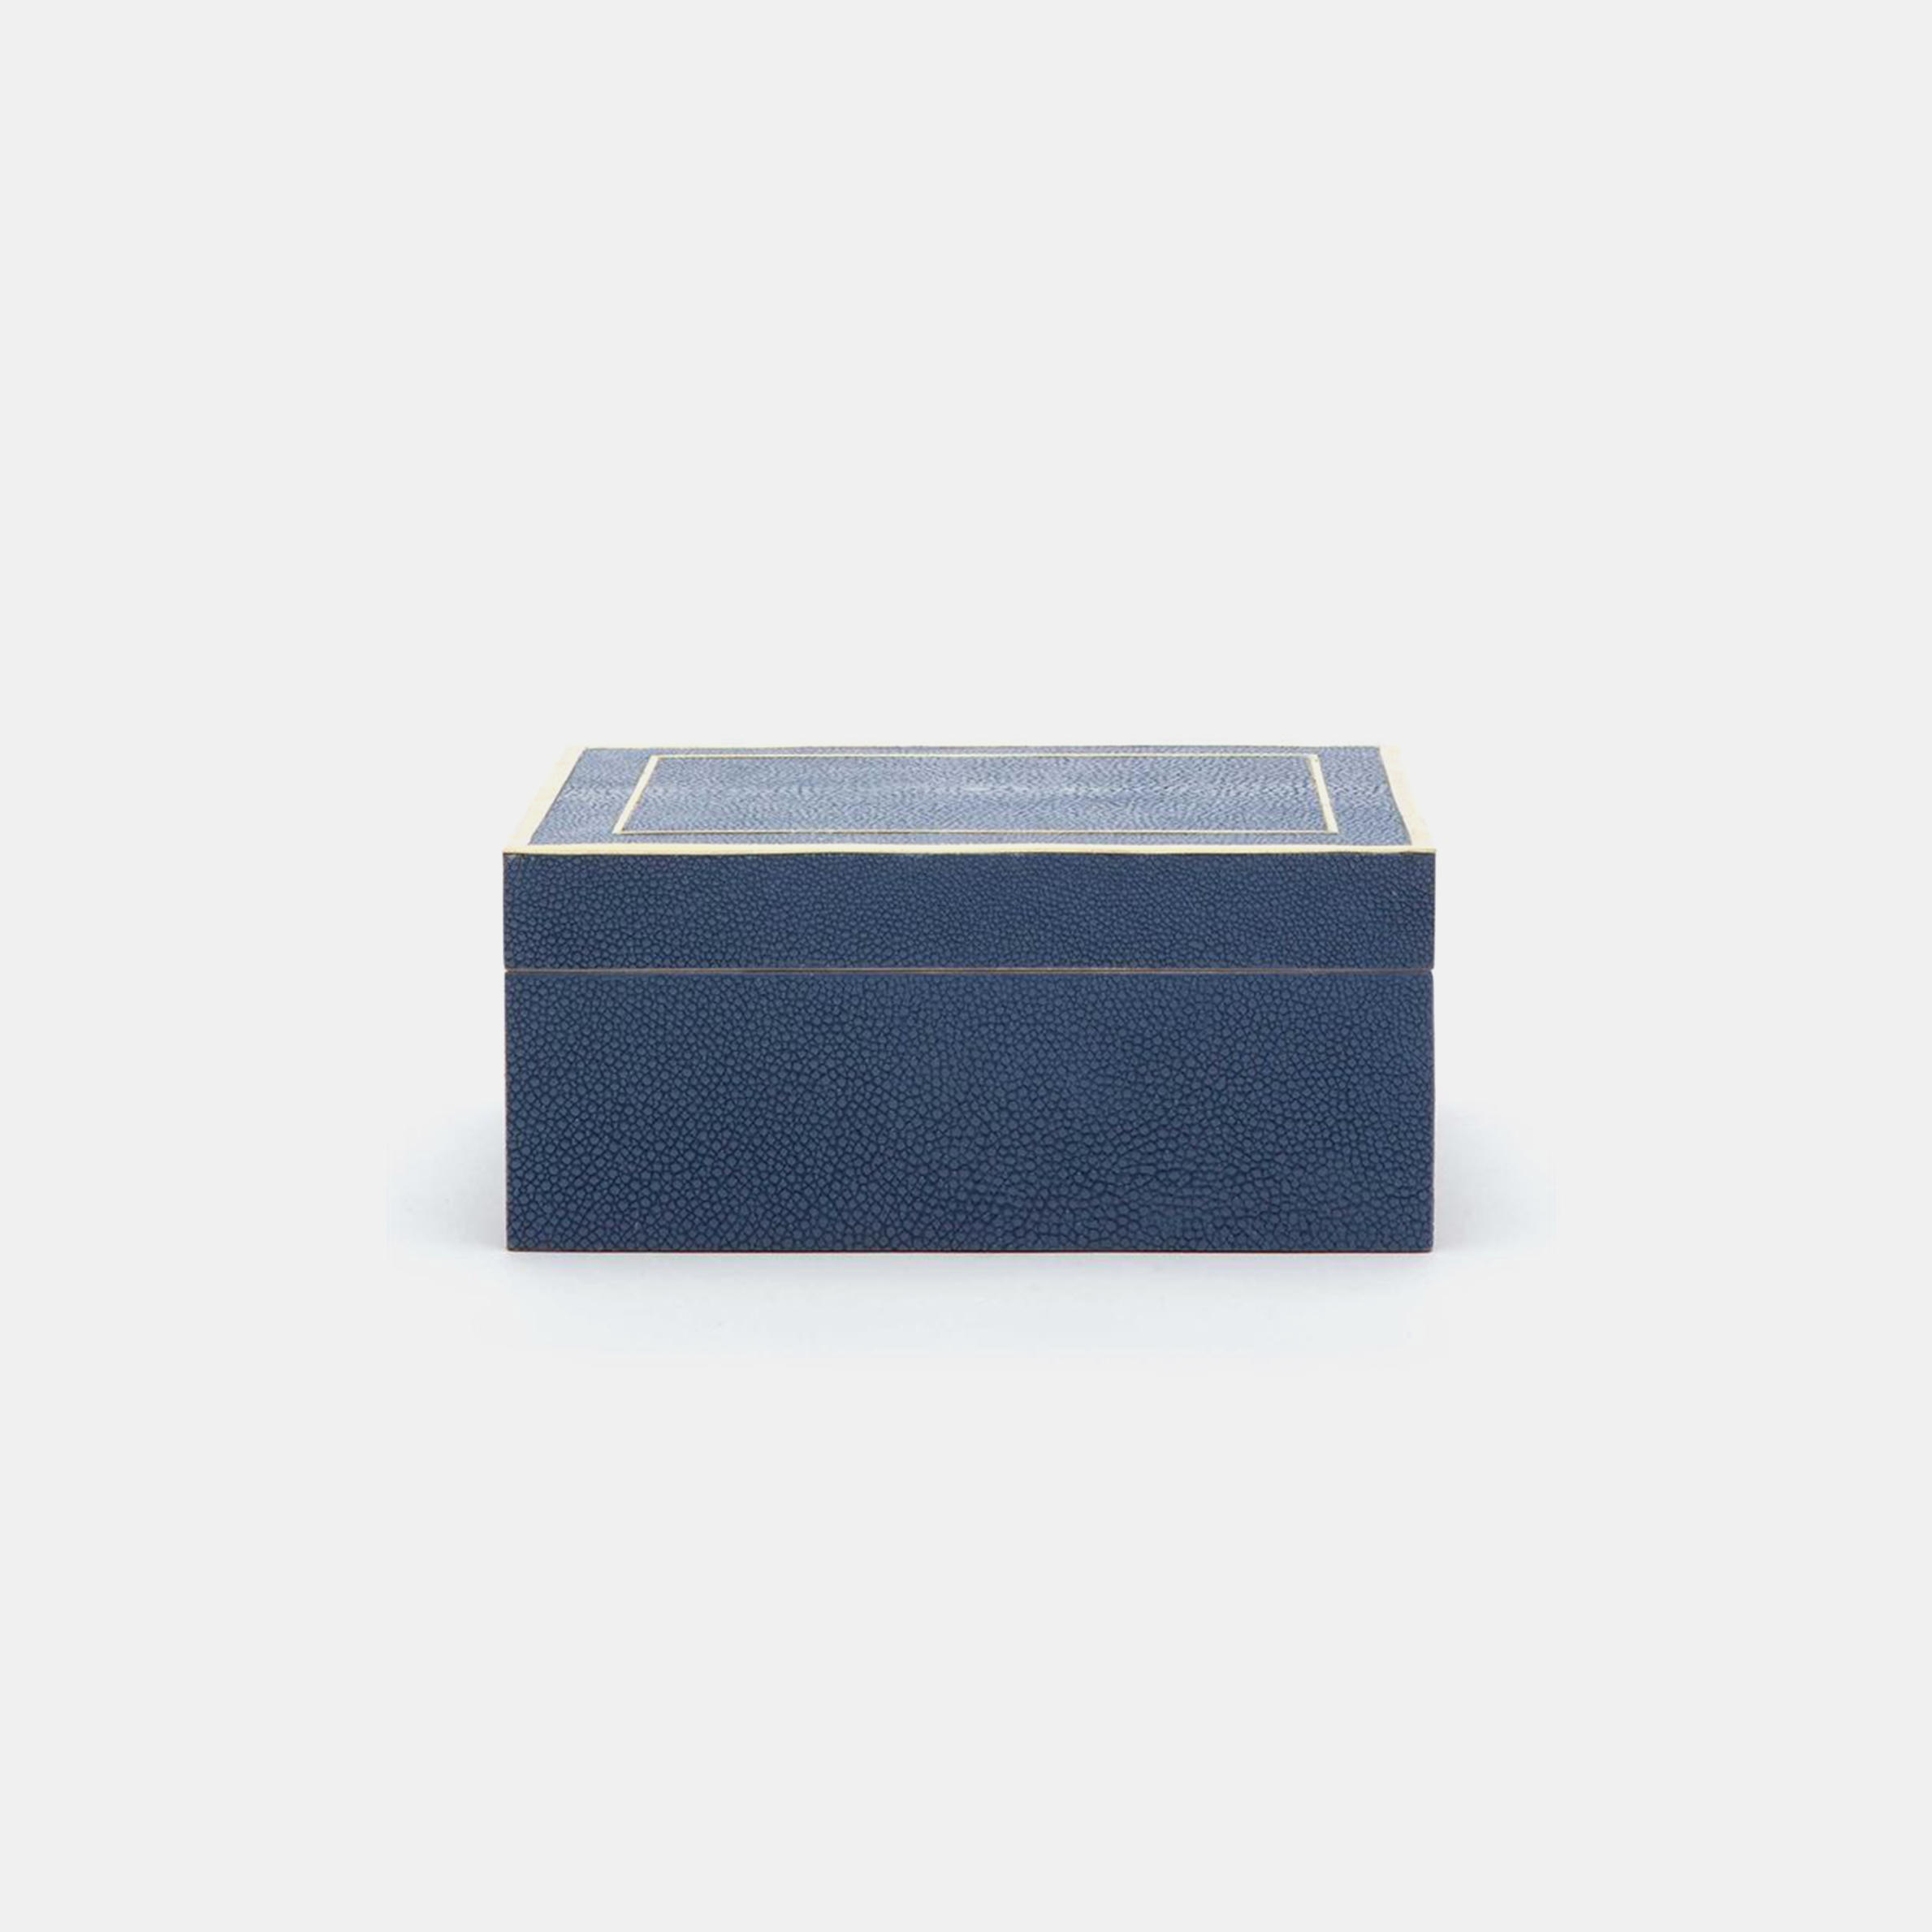 "Mateus Box  9""L X 7""W X 4""H or 12""L X 10""W X 5""H Available in navy (shown), snow, sand, or dark mushroom. SKU39238MGS"